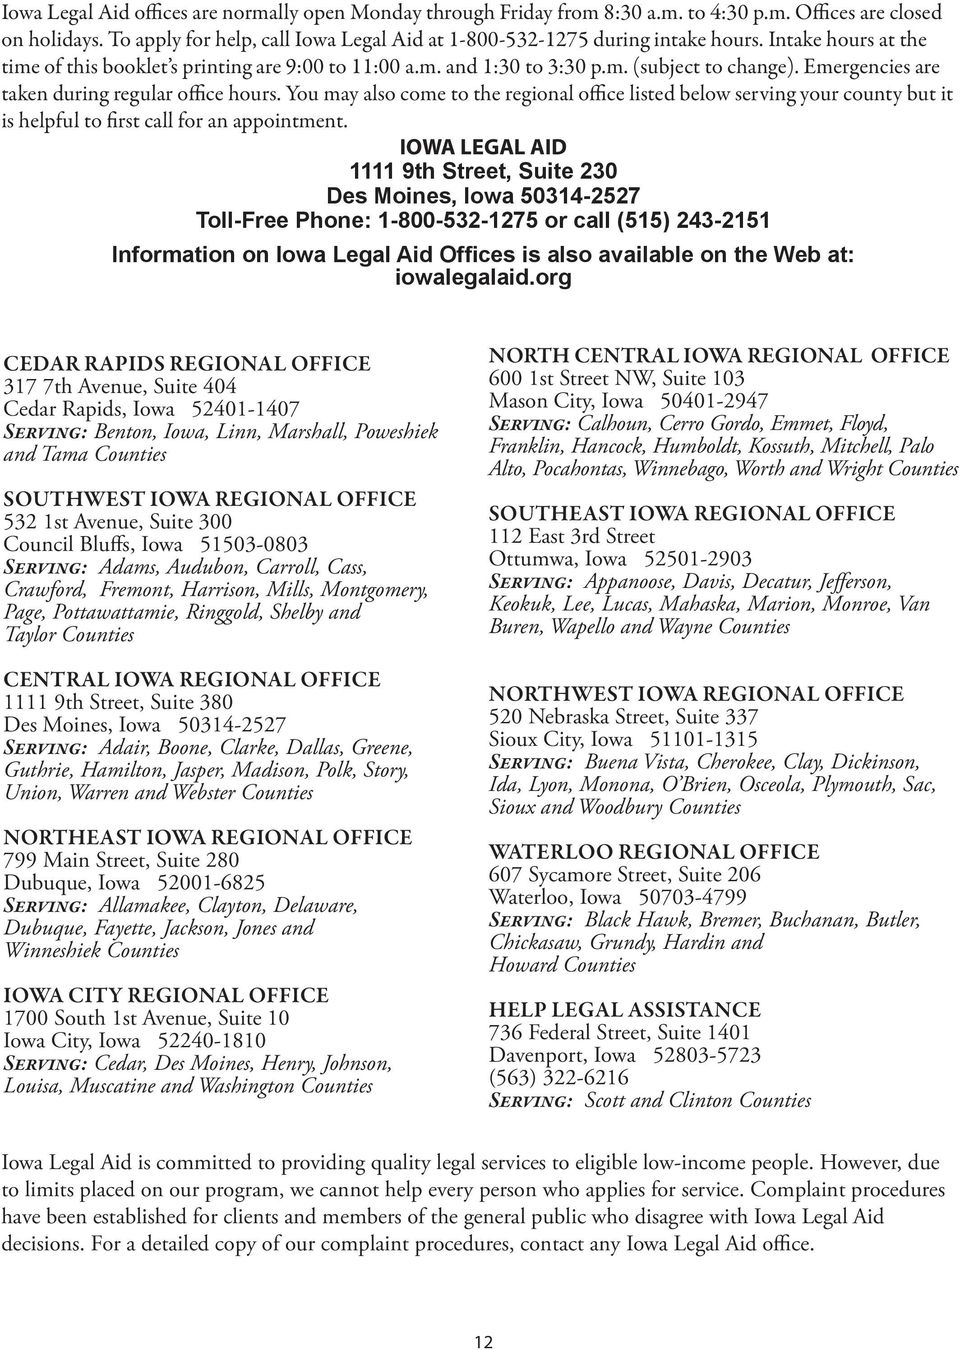 You may also come to the regional office listed below serving your county but it is helpful to first call for an appointment.